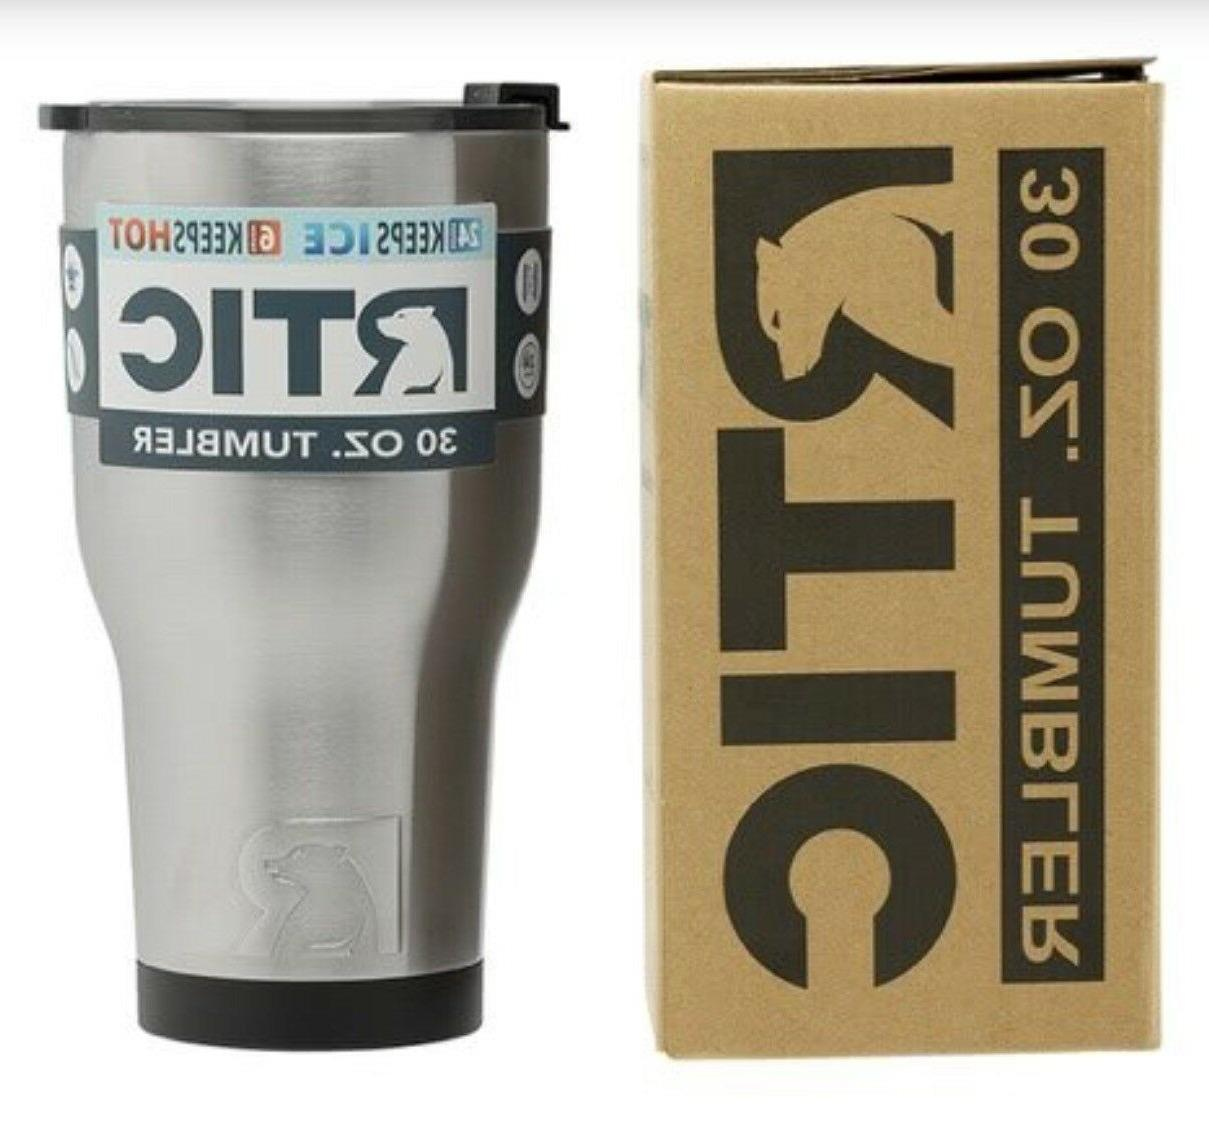 RTIC 30oz Steel Tumbler with 2018 lid